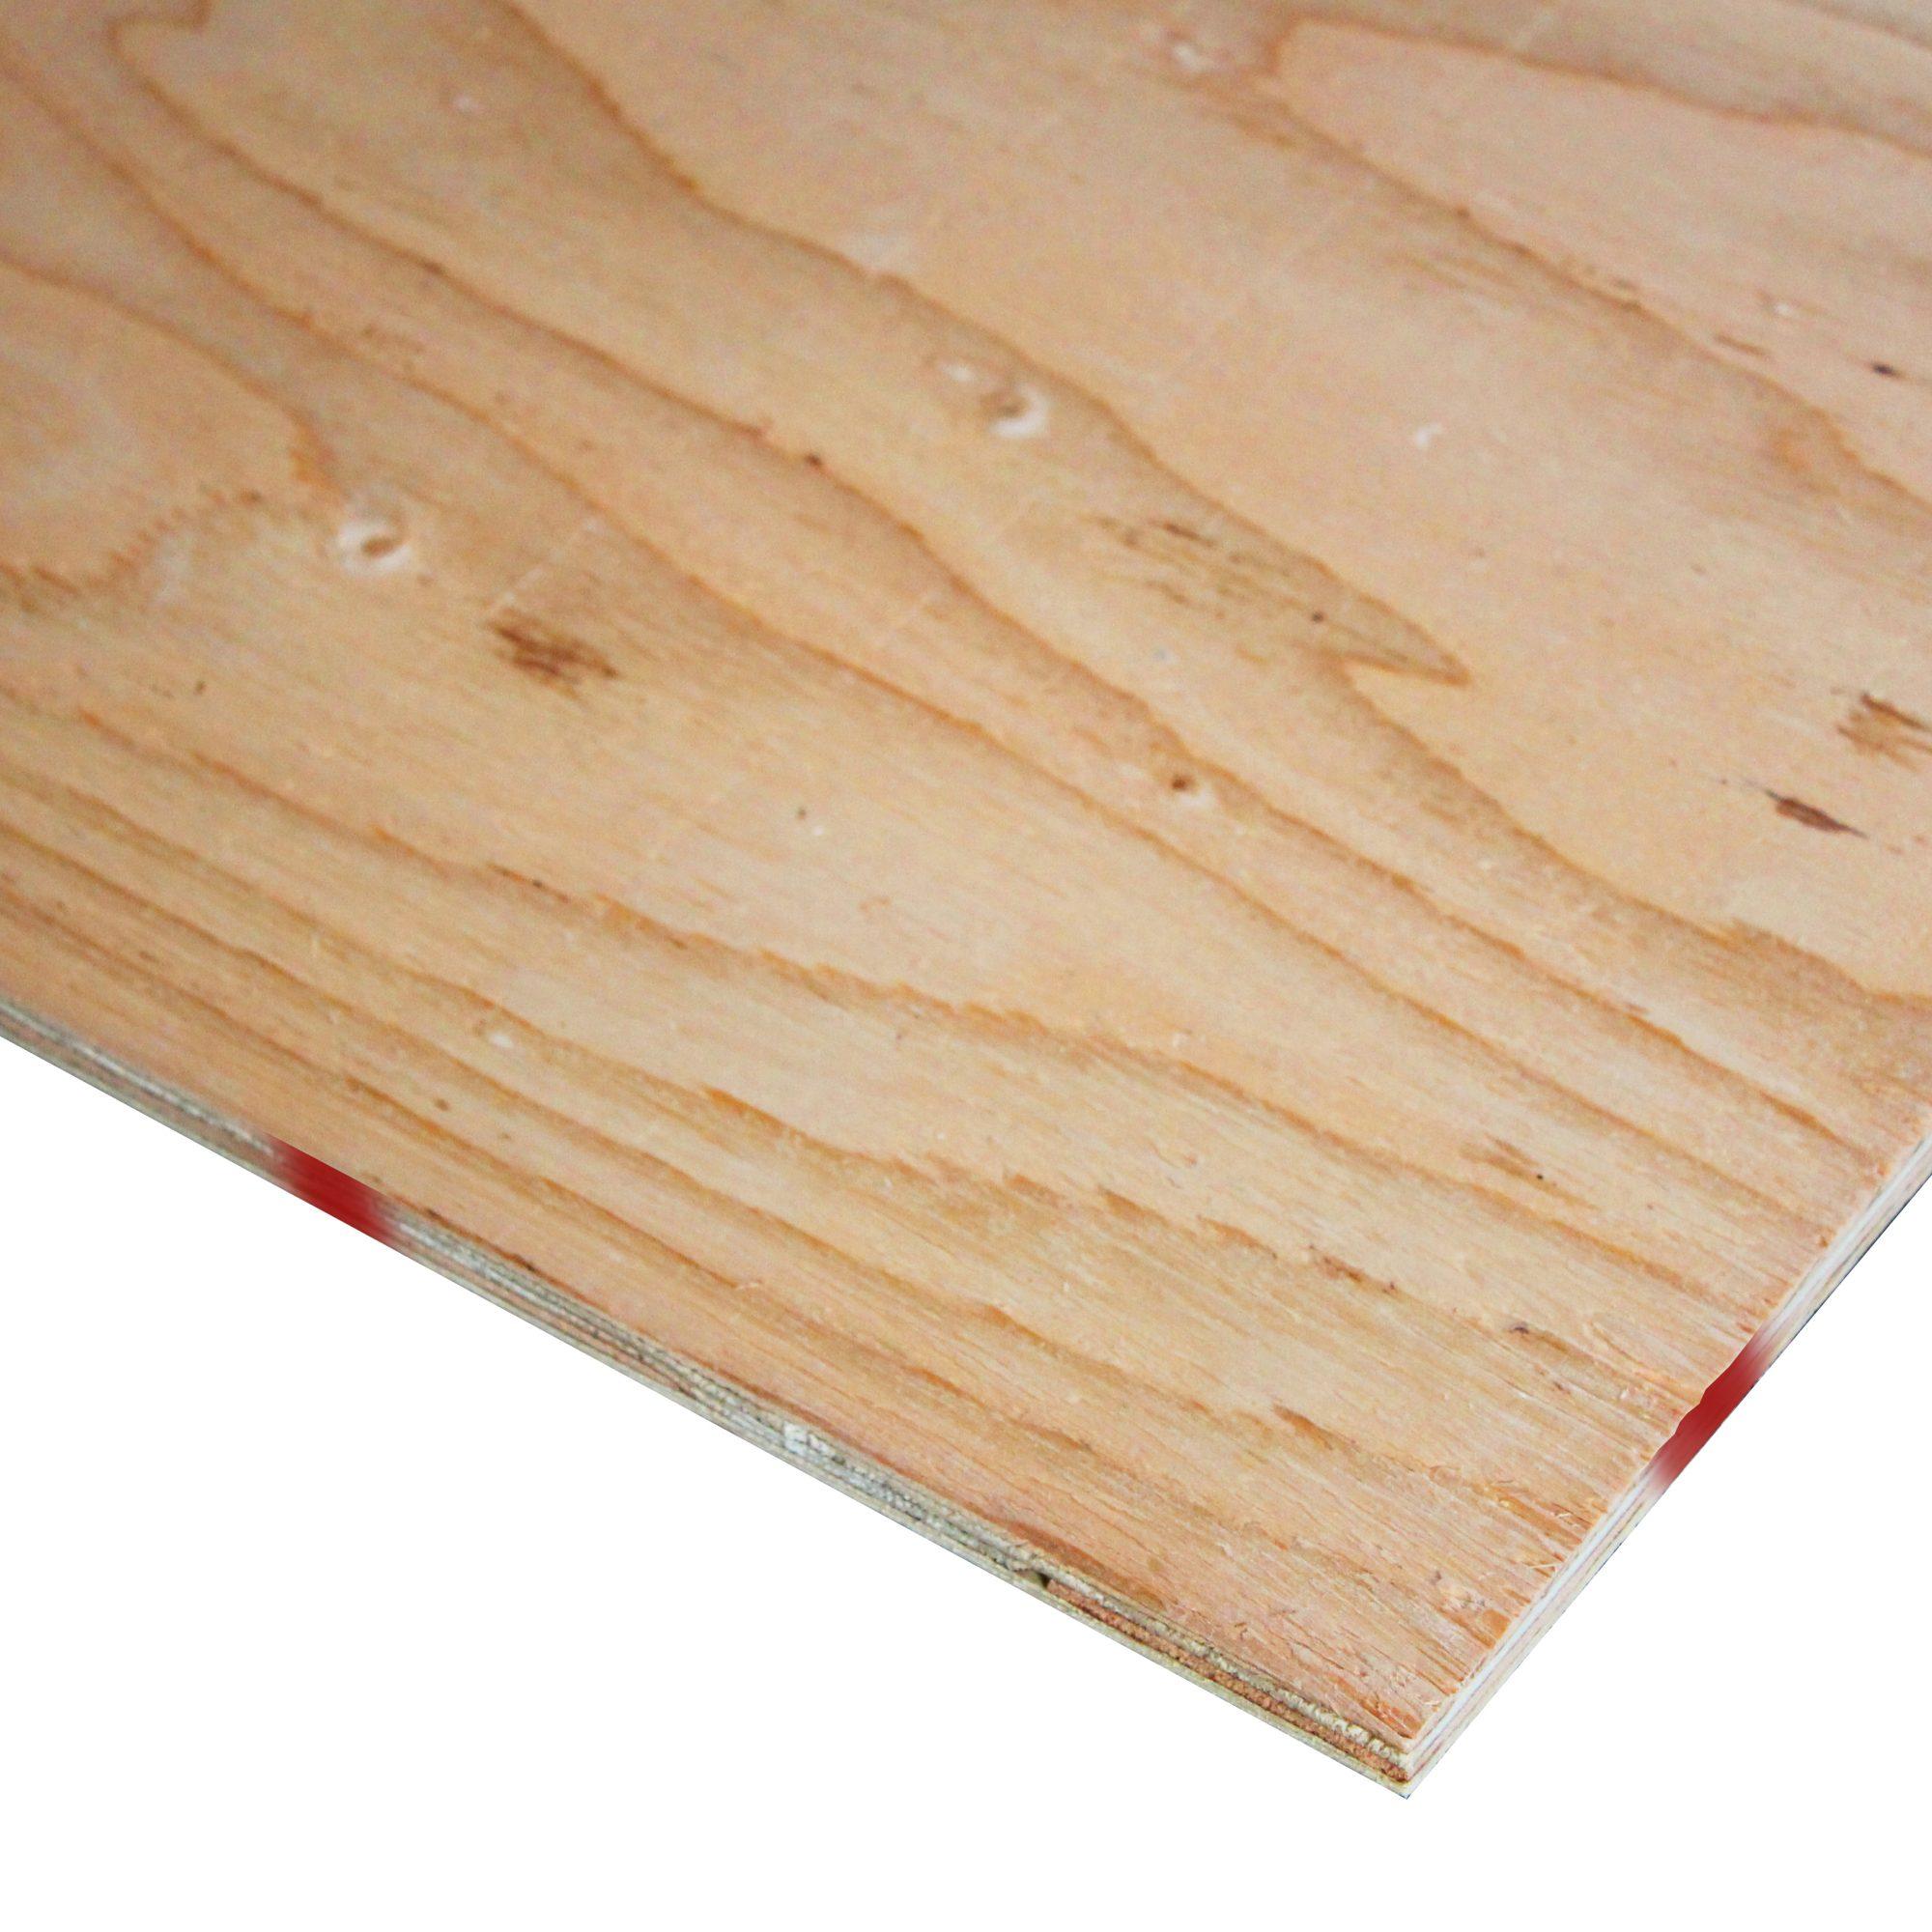 CDX DOUGLAS FIR 4-PLY PLYWOOD